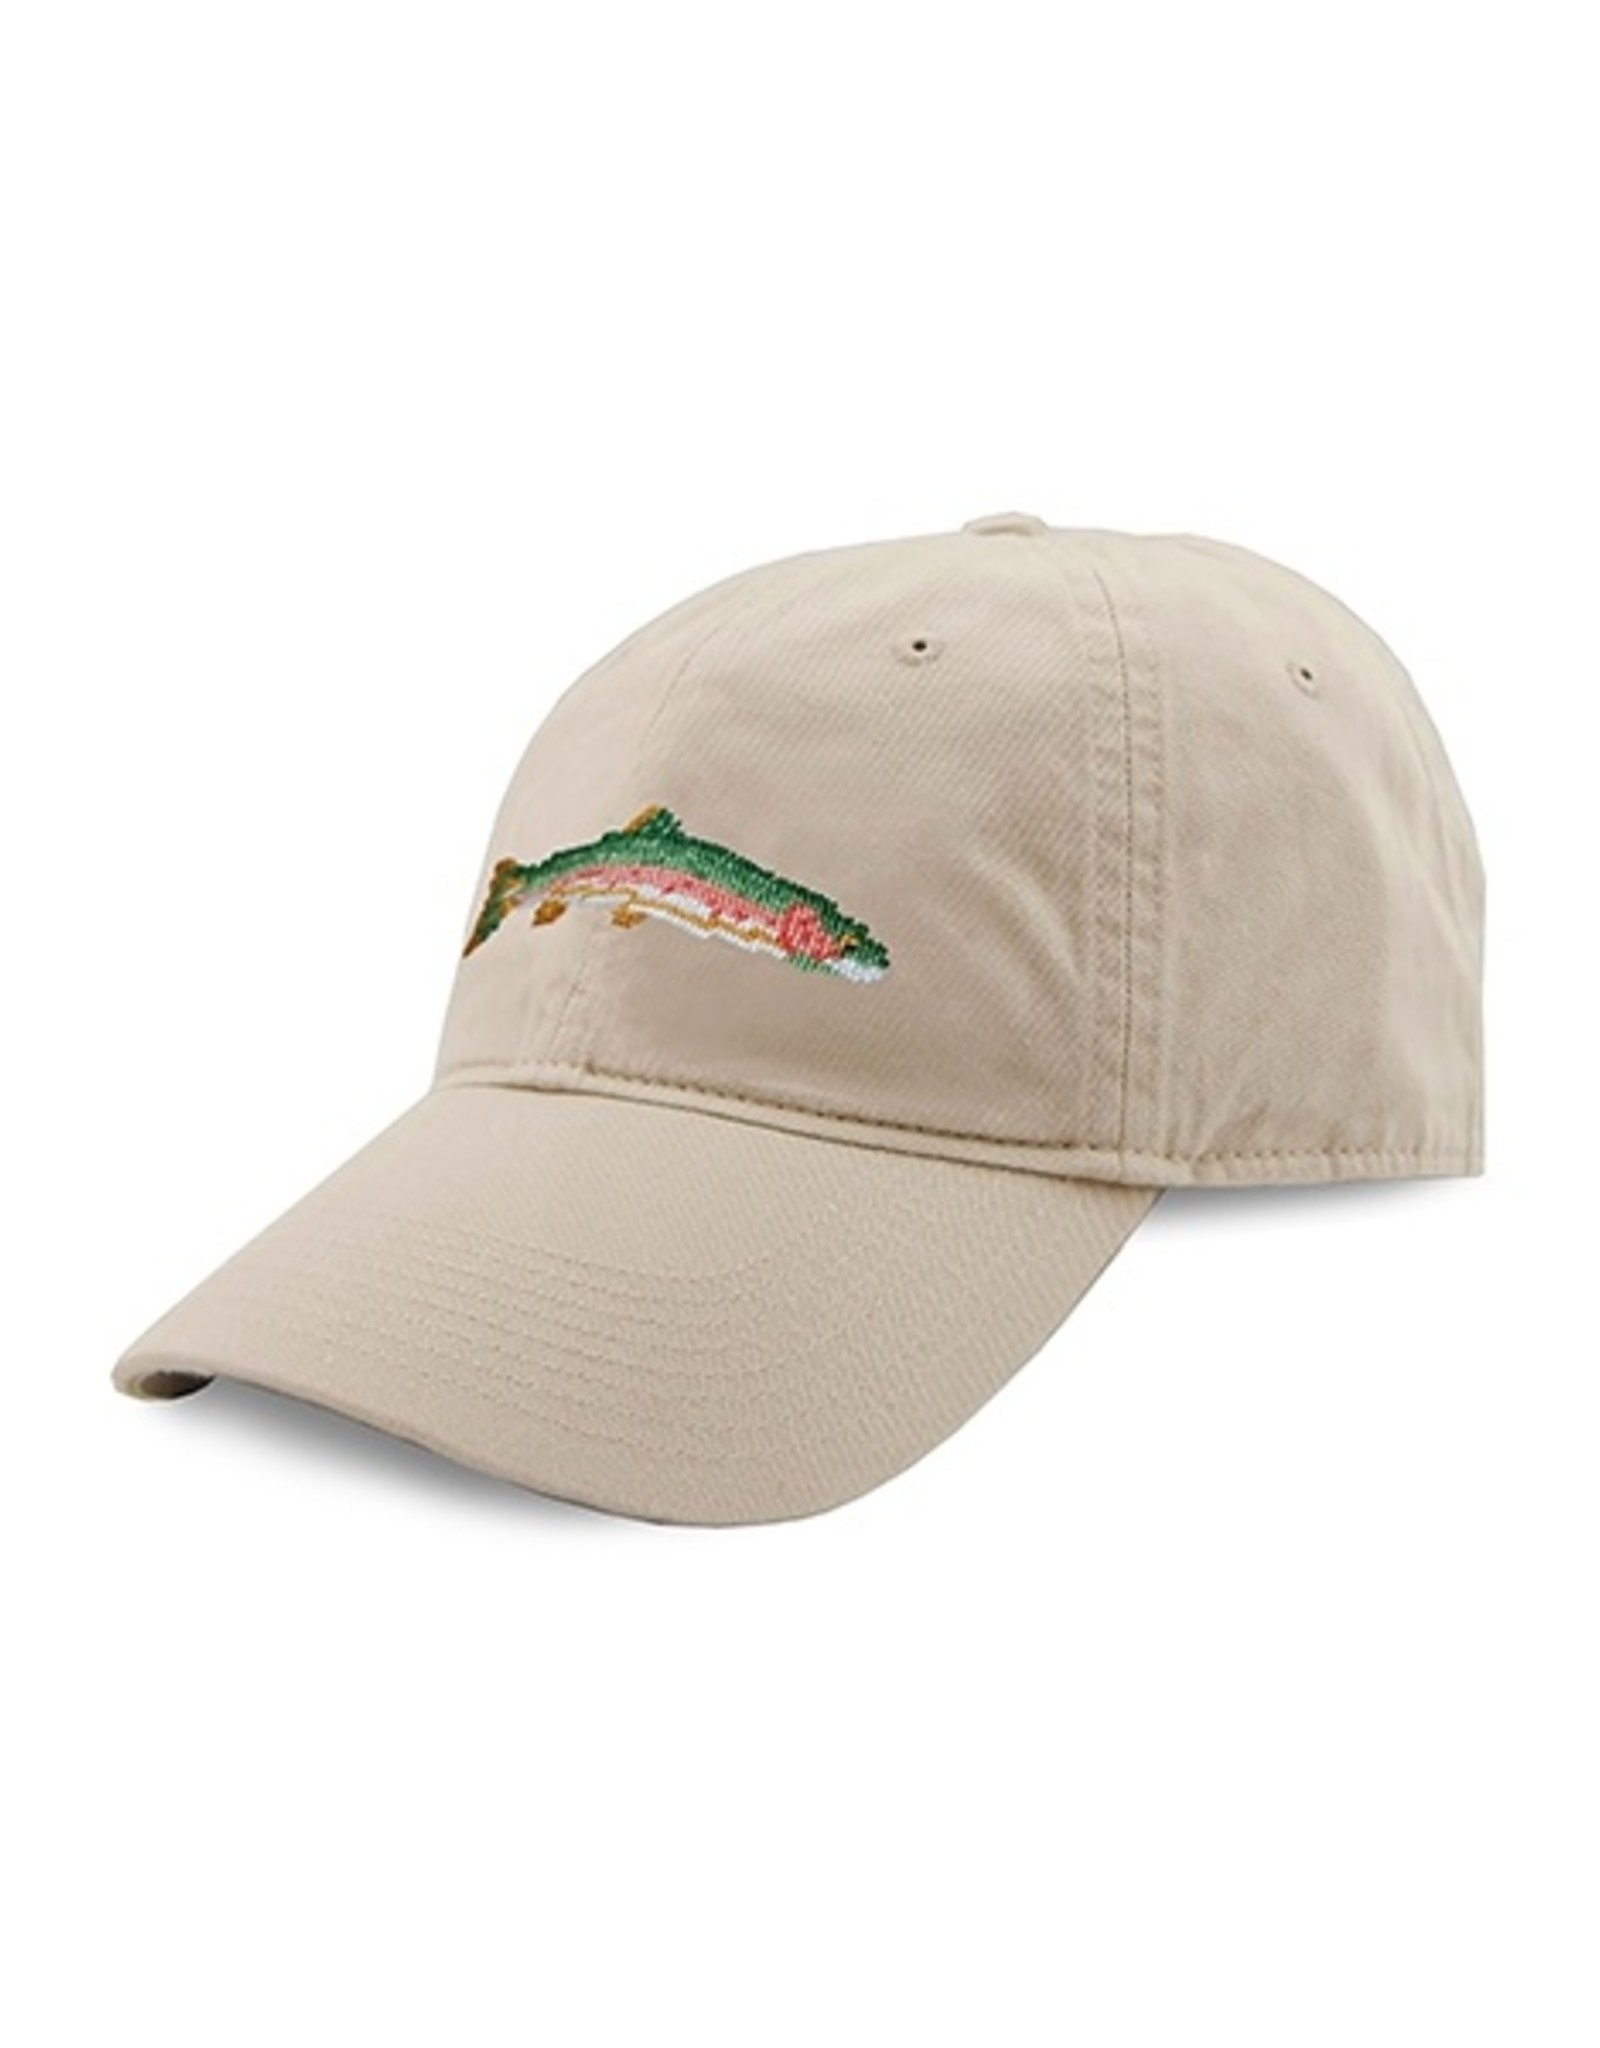 Smathers and Branson Stitched Hat